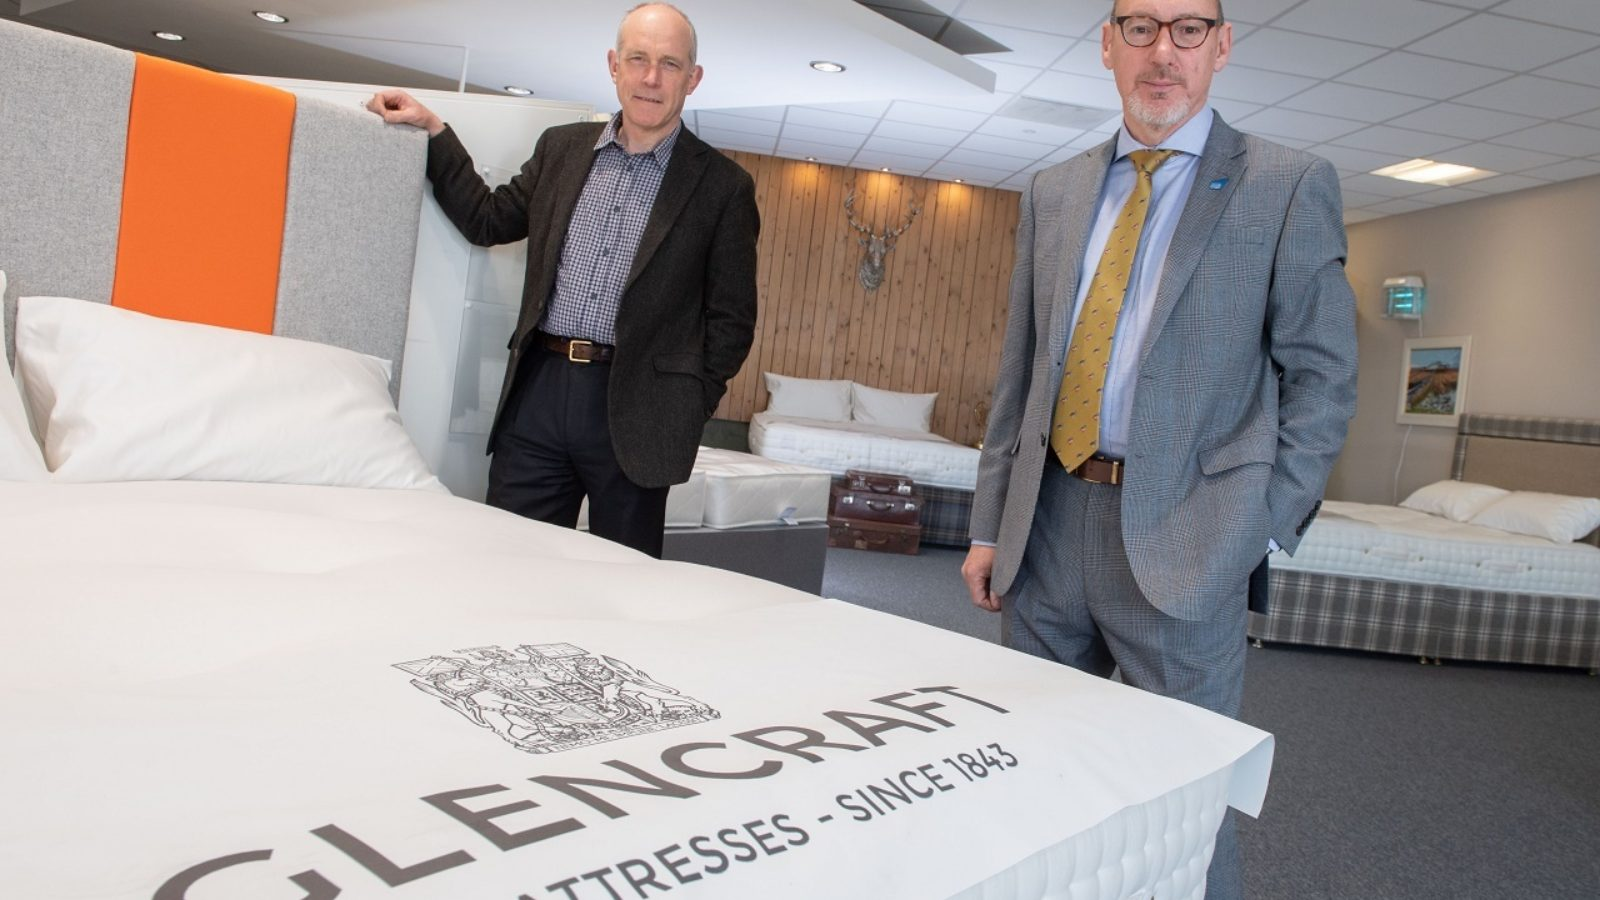 Glencraft acting chairman Jonathan Smith and Glencraft managing director Graham McWilliam at the charity's Aberdeen showroom